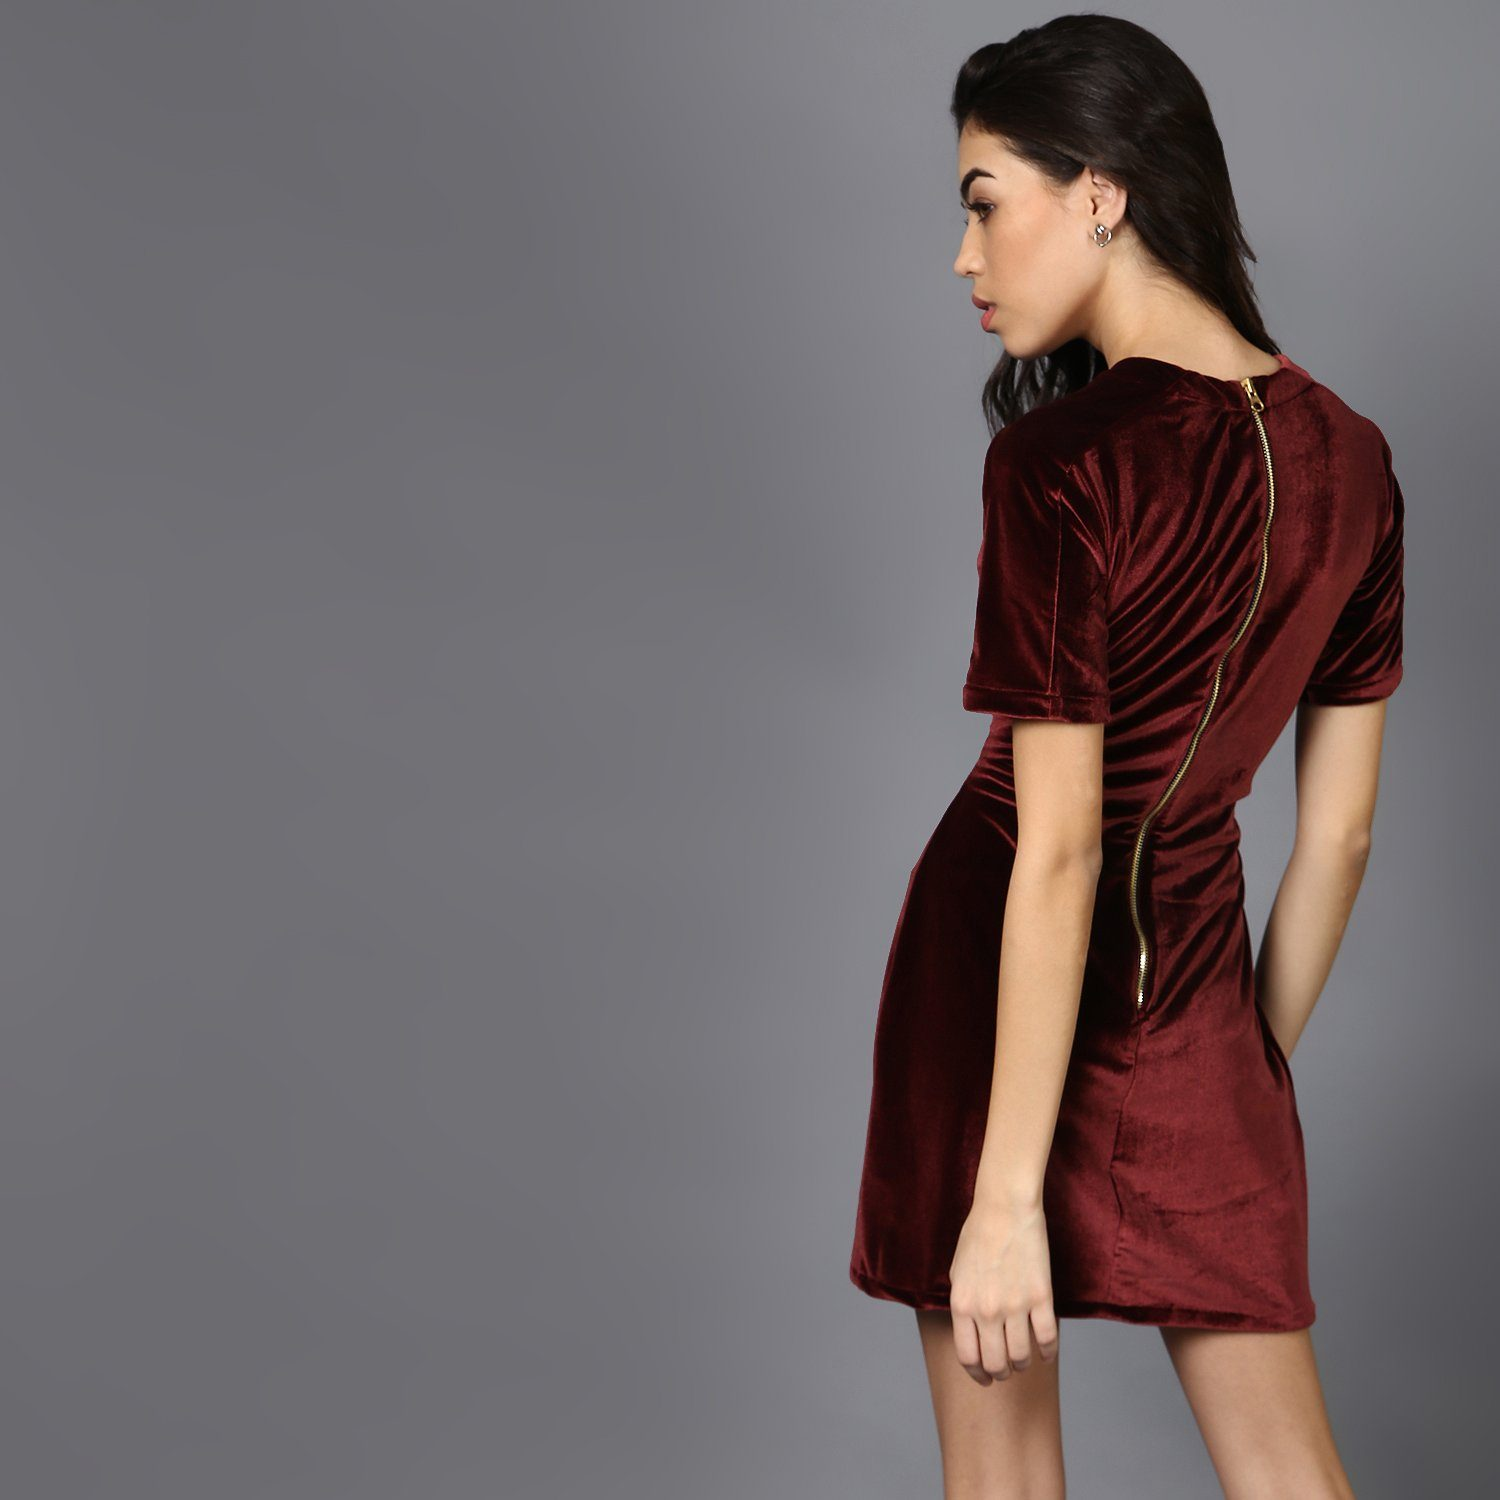 Maroon Velvet Dress with Mid-riff cut out & Stitch Detail